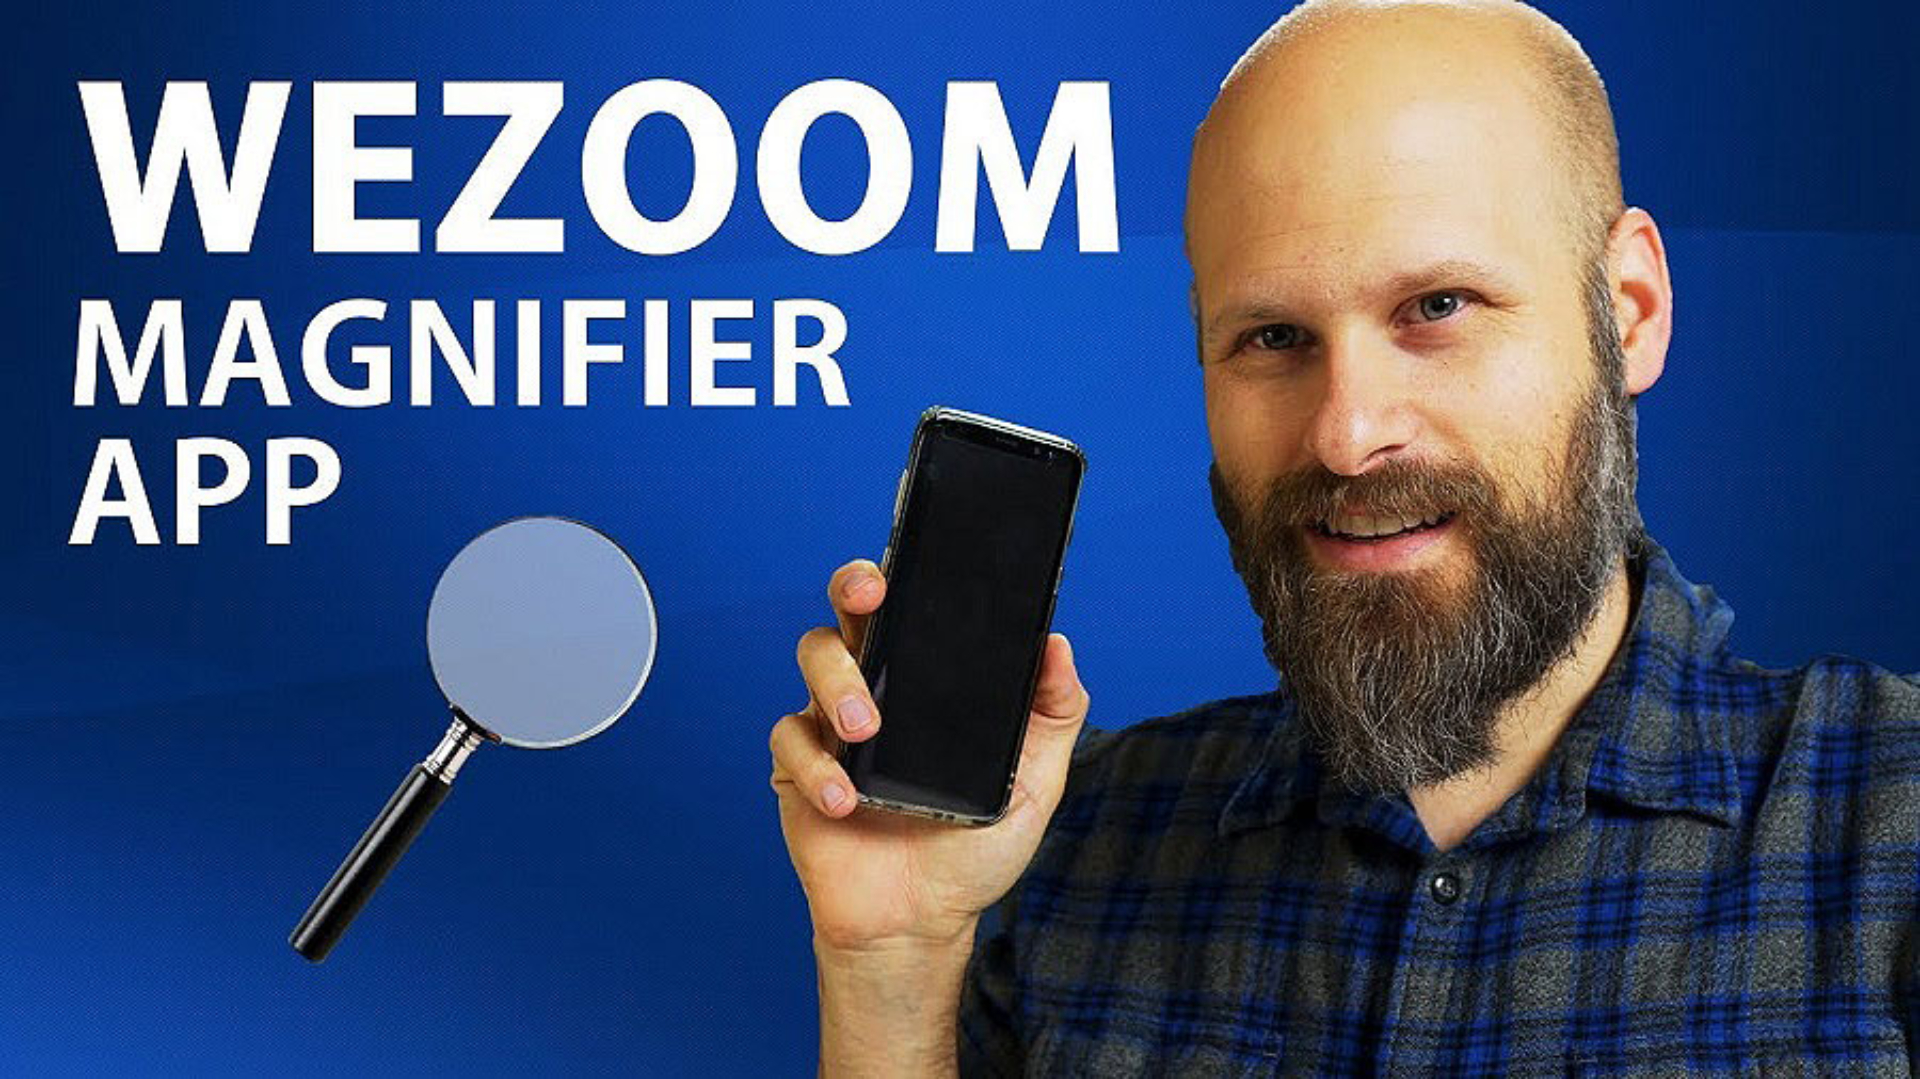 Sam Seavey reviewing the Wezoom Magnifier App